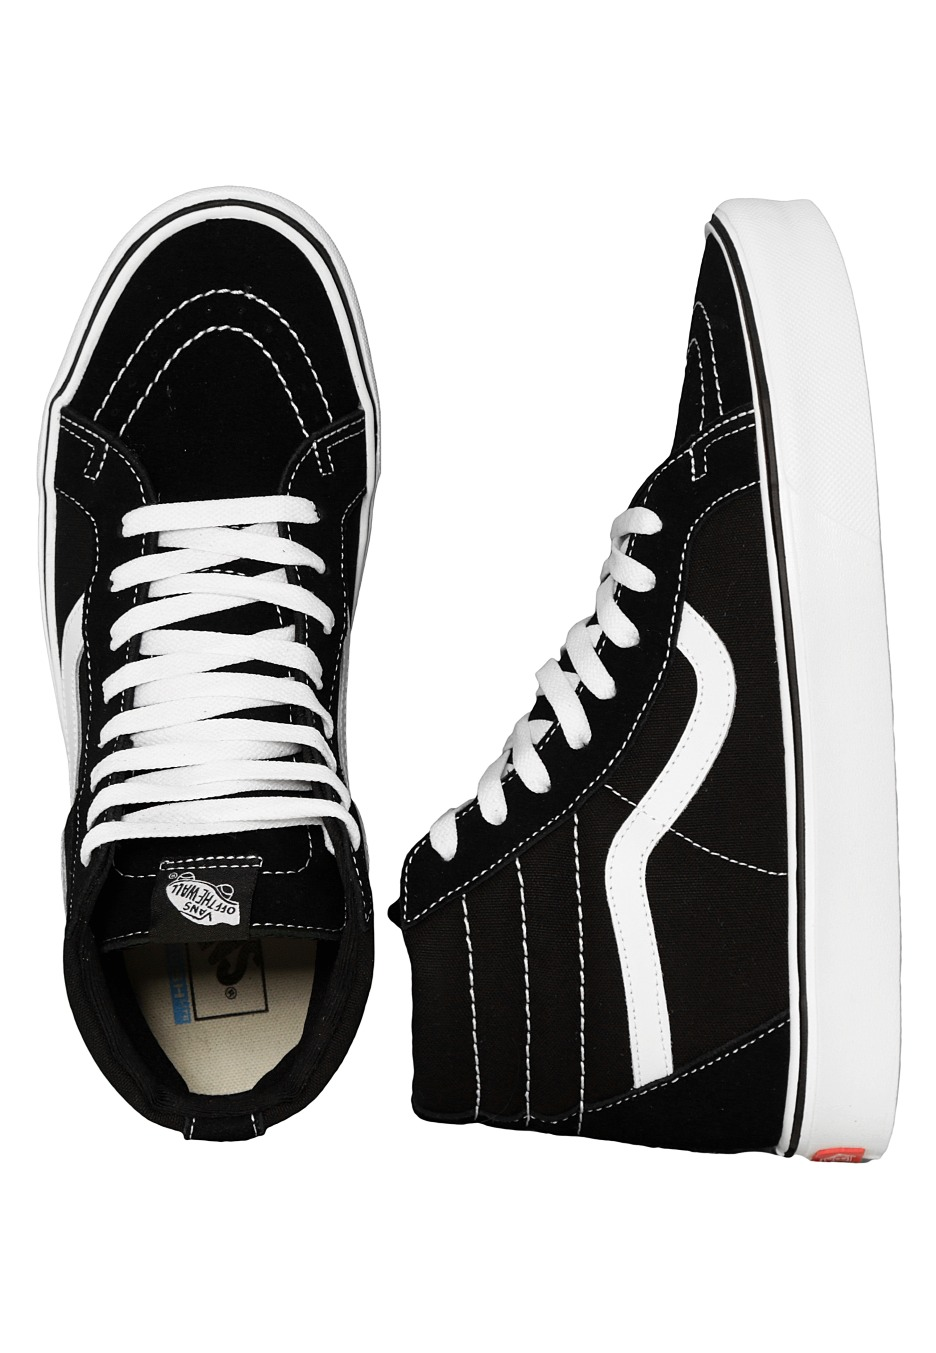 a0d61b2ecd23 Vans - Sk8-Hi Lite + Suede Canvas Black White - Girl Shoes - Impericon.com  UK